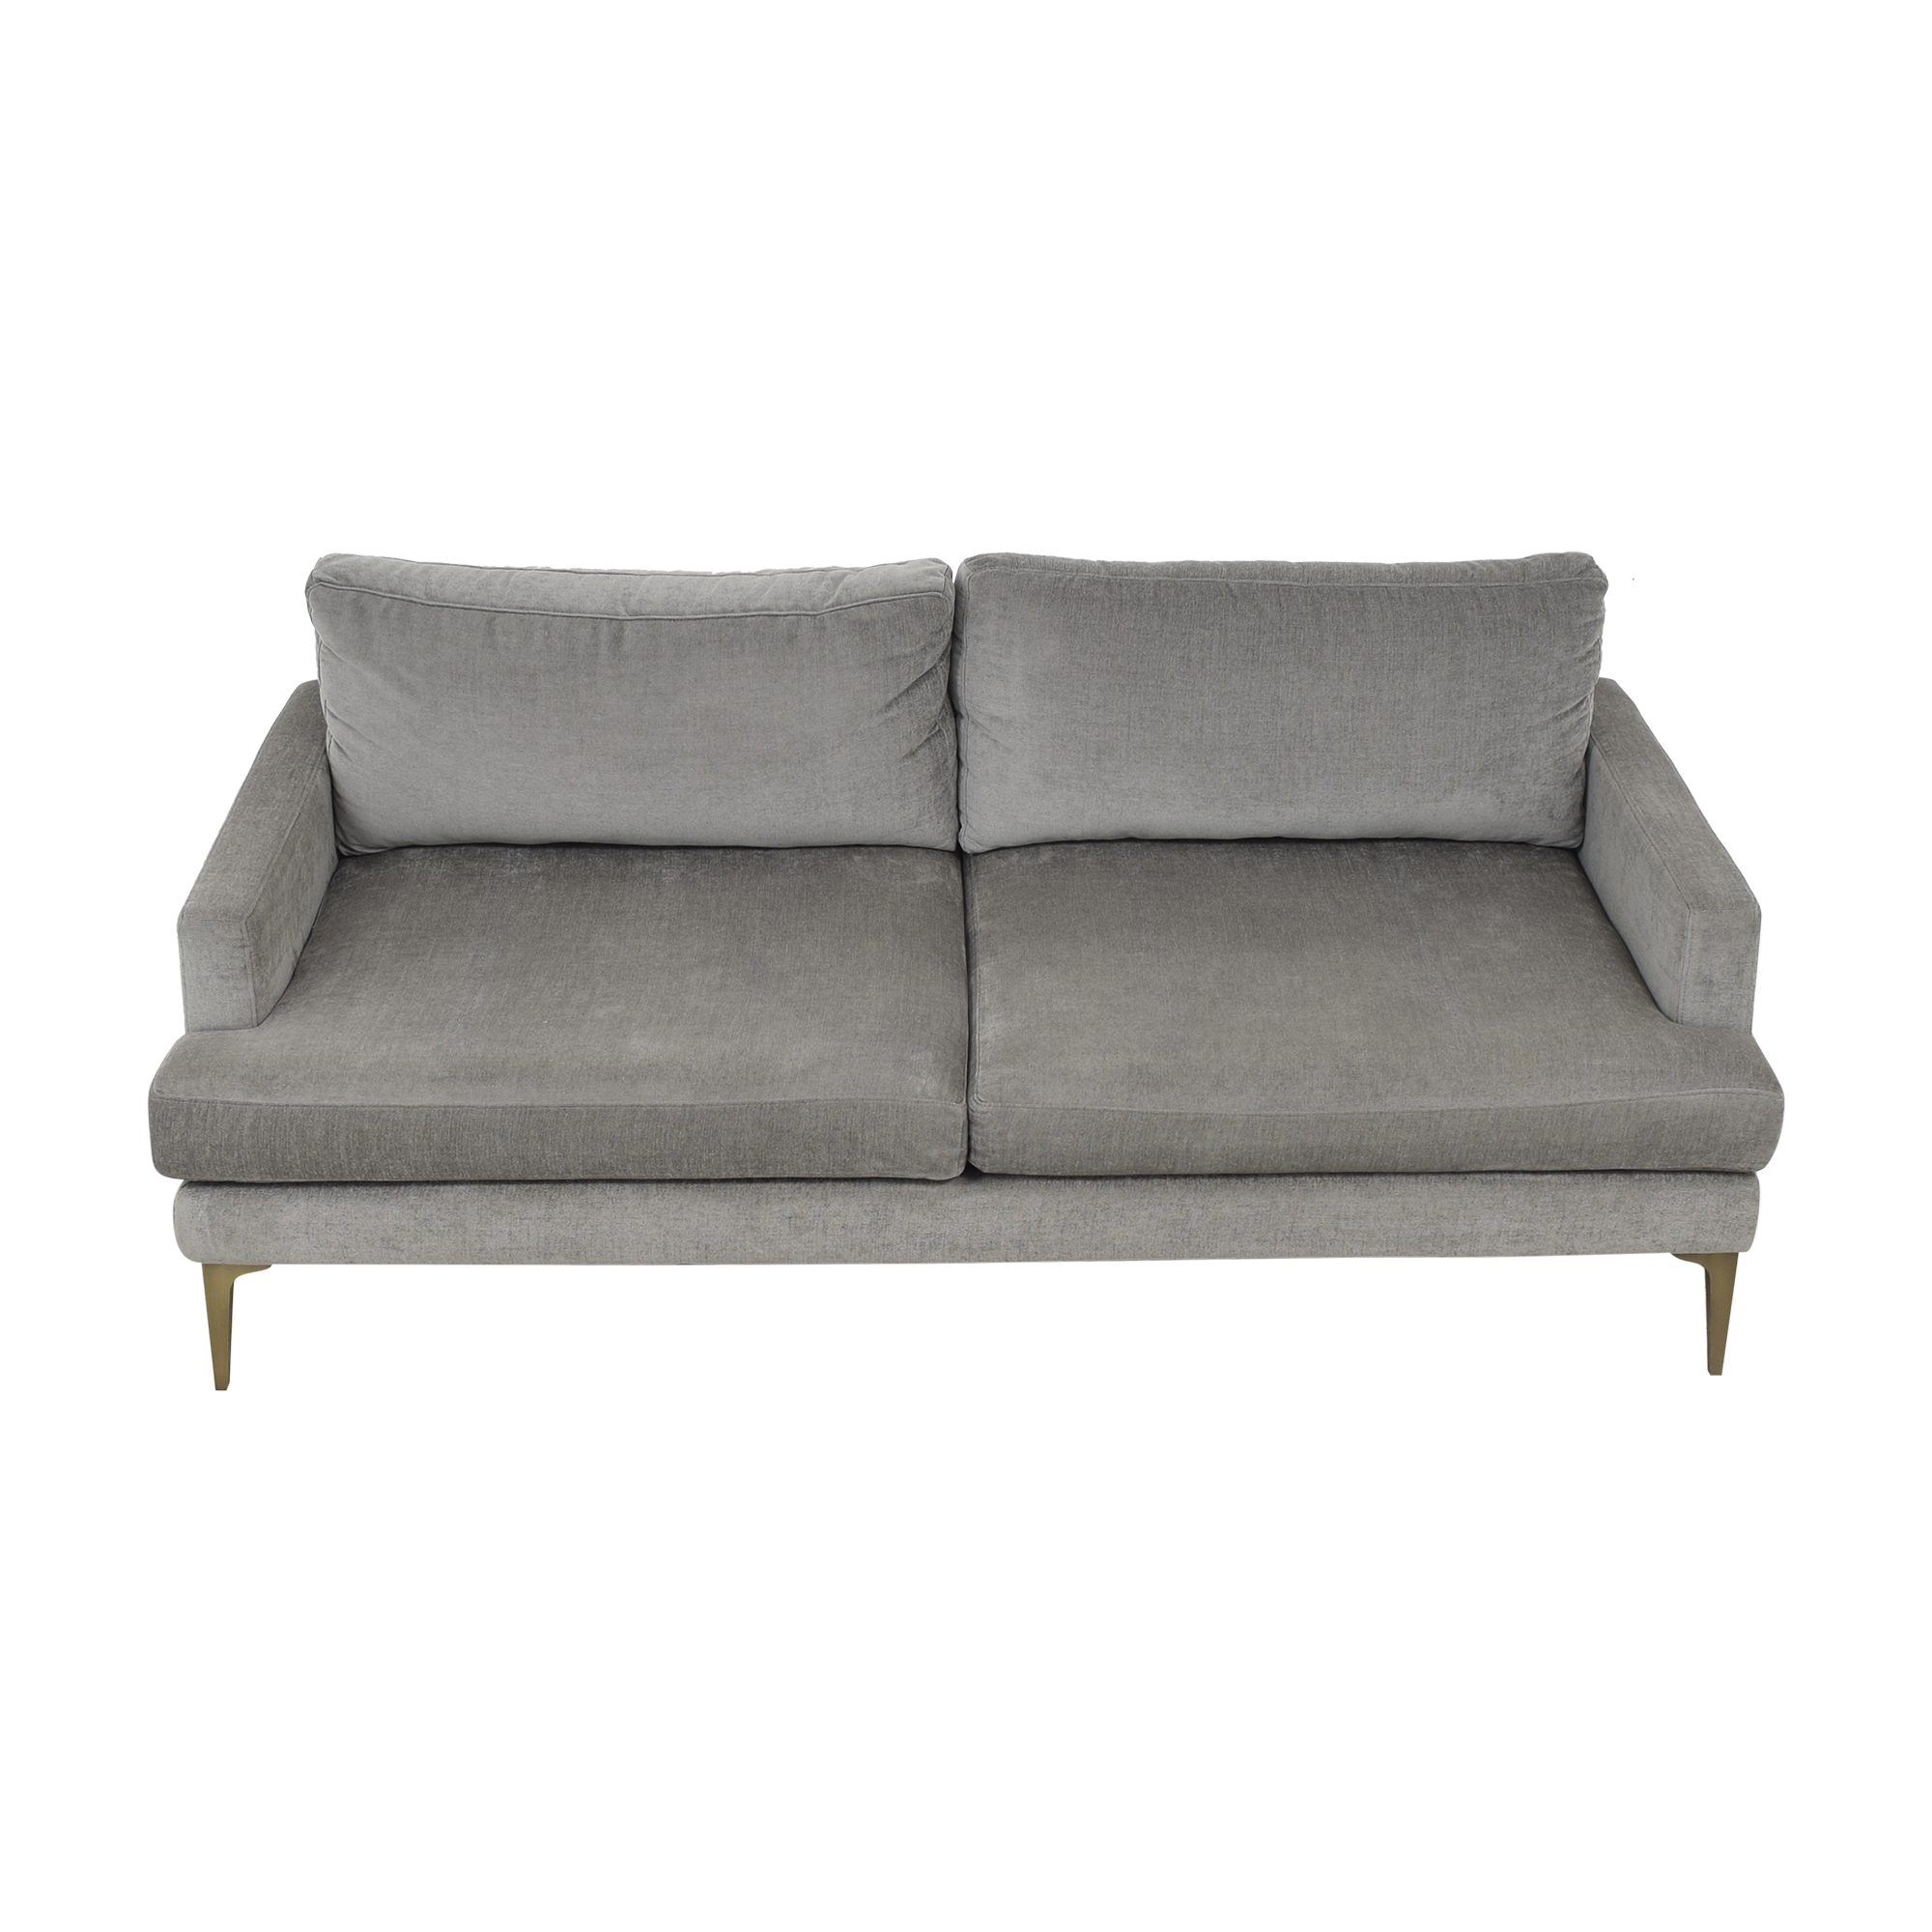 West Elm West Elm Andes Sofa ct